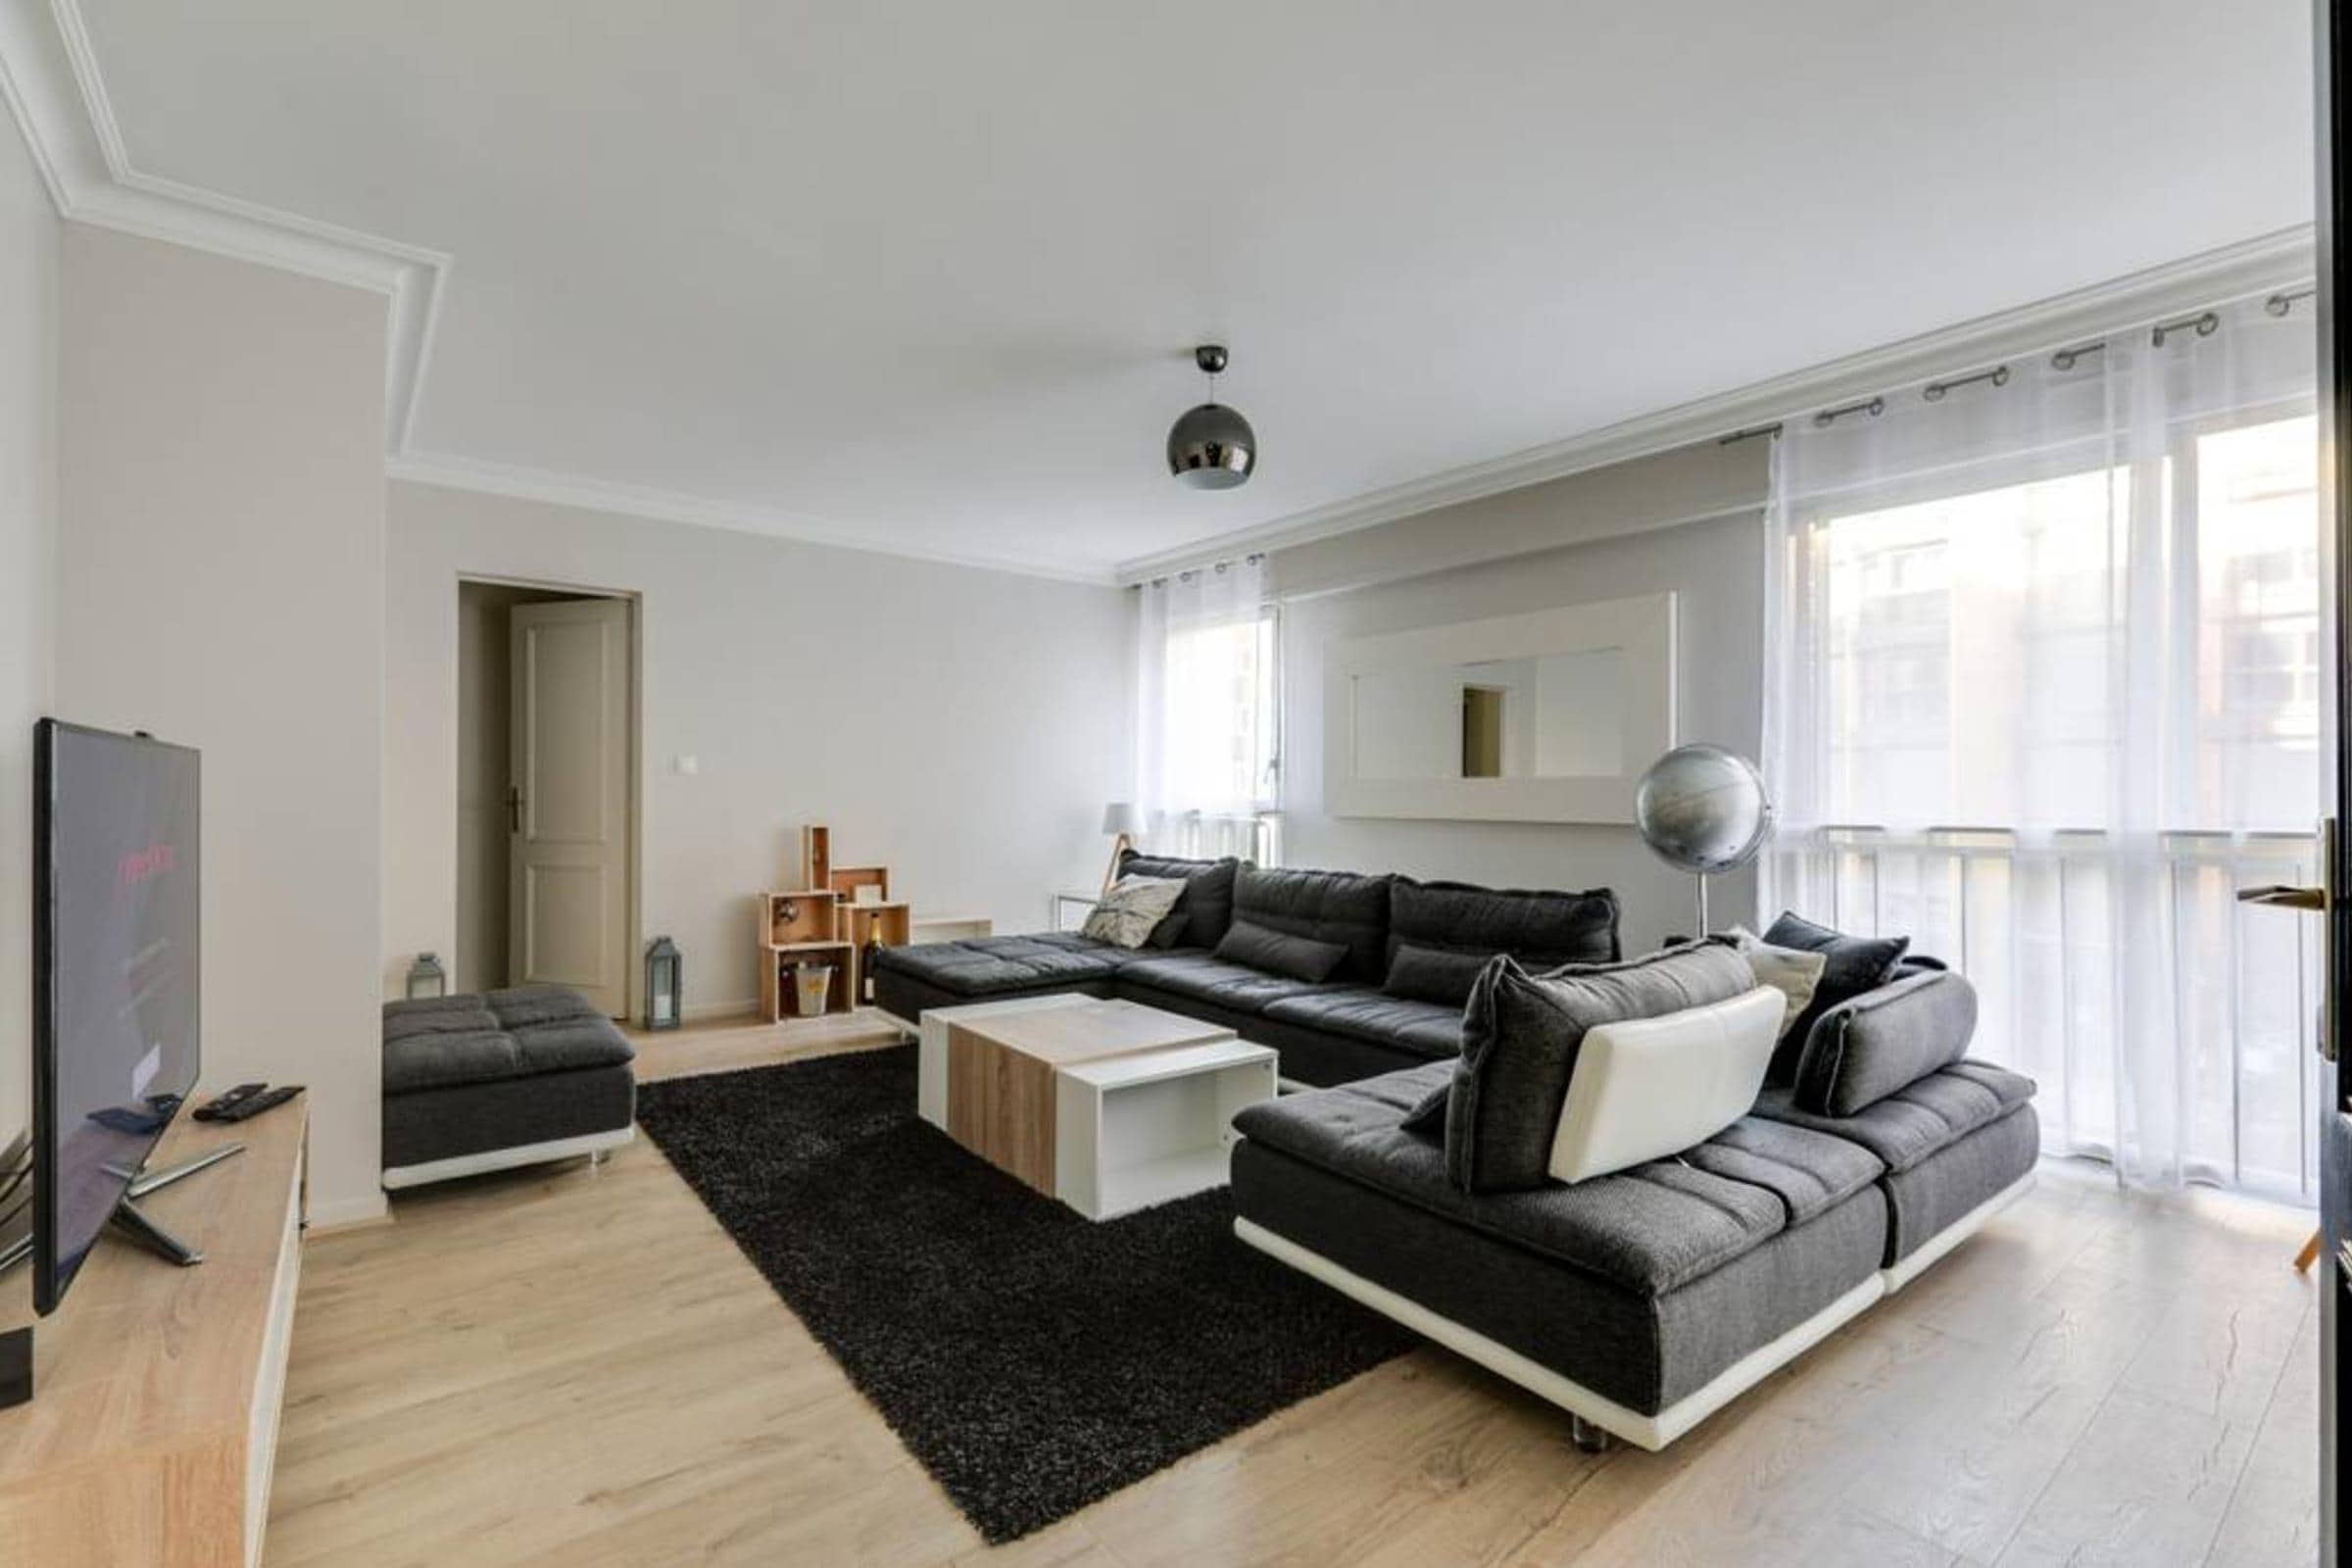 Property Image 2 - Modern Elegant Apartment with Large Living Spaces